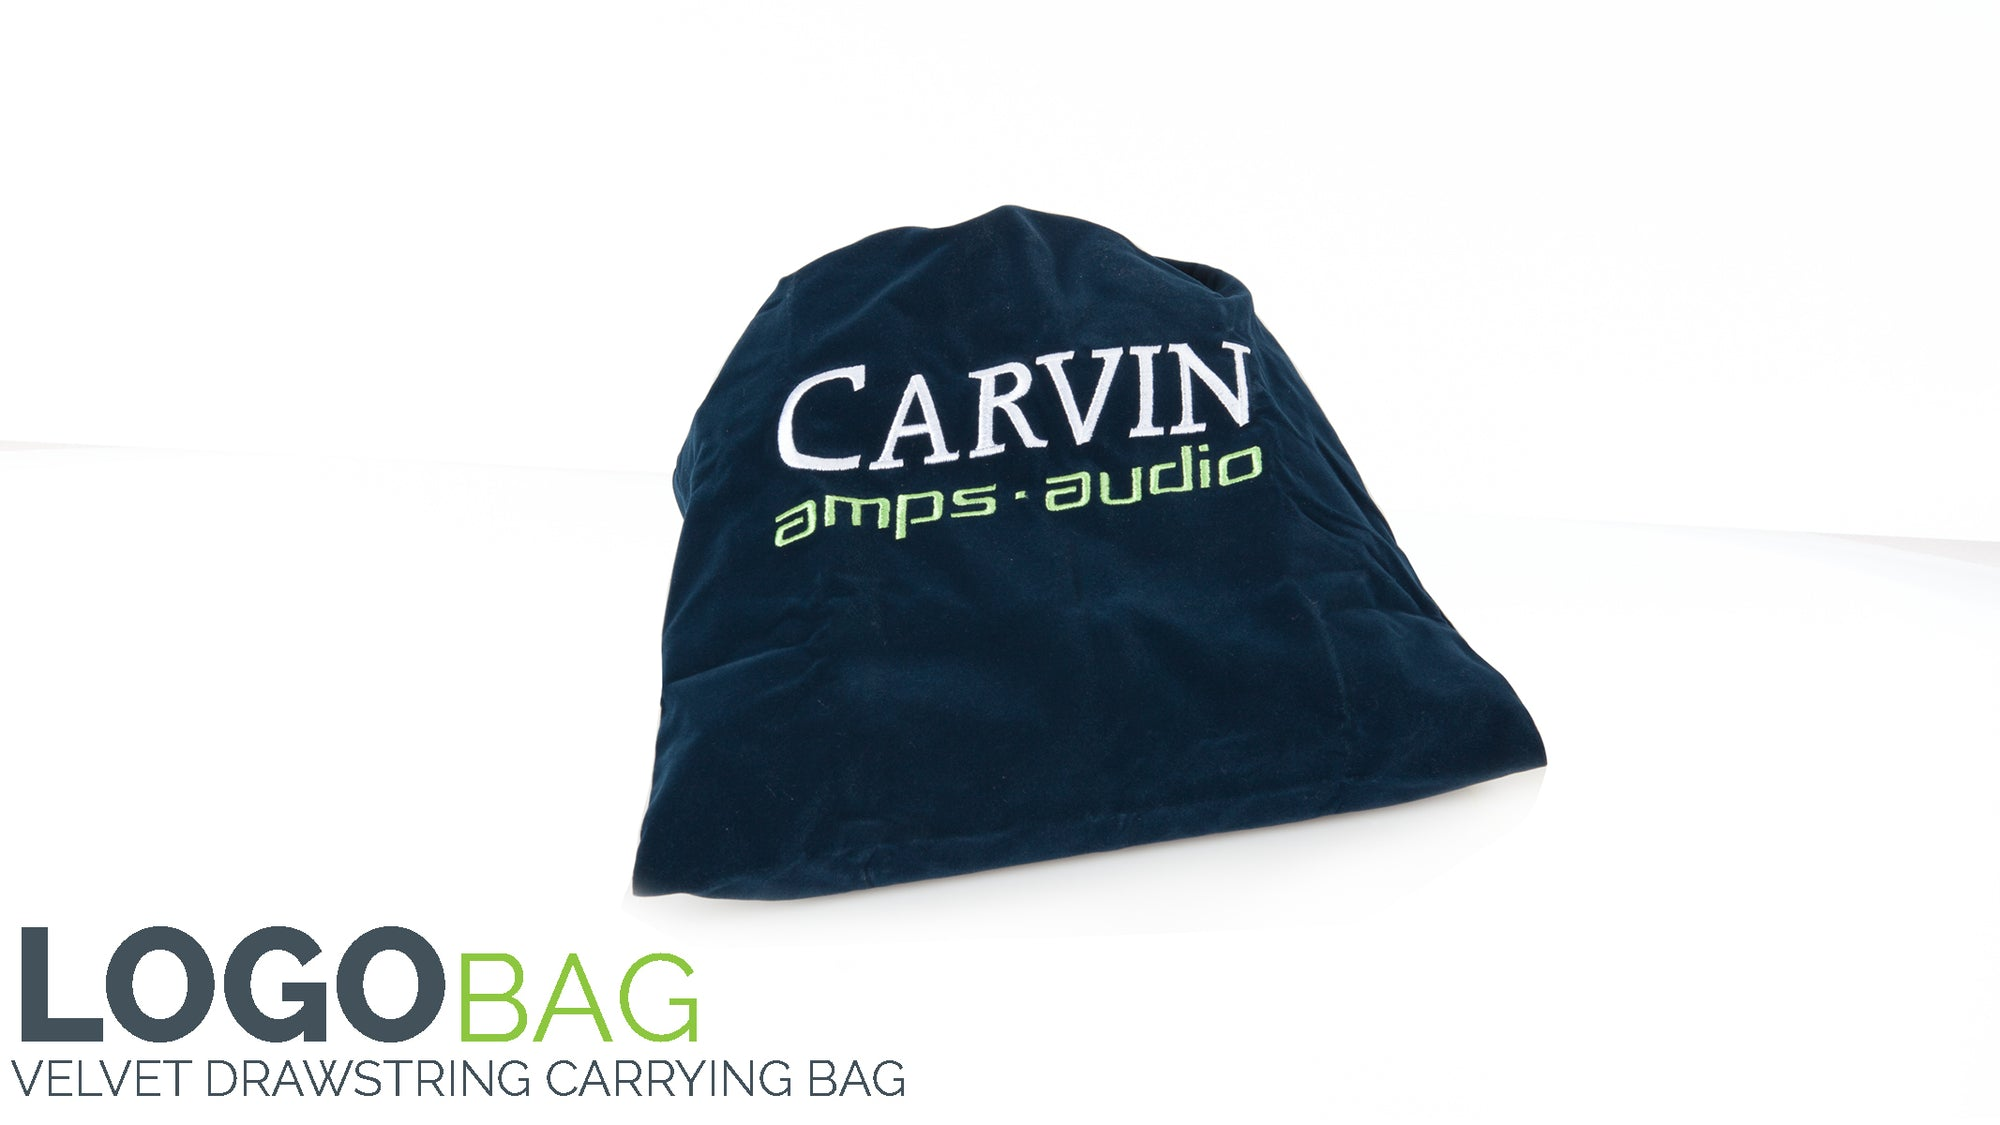 carvin drawstring carrying bag with logo